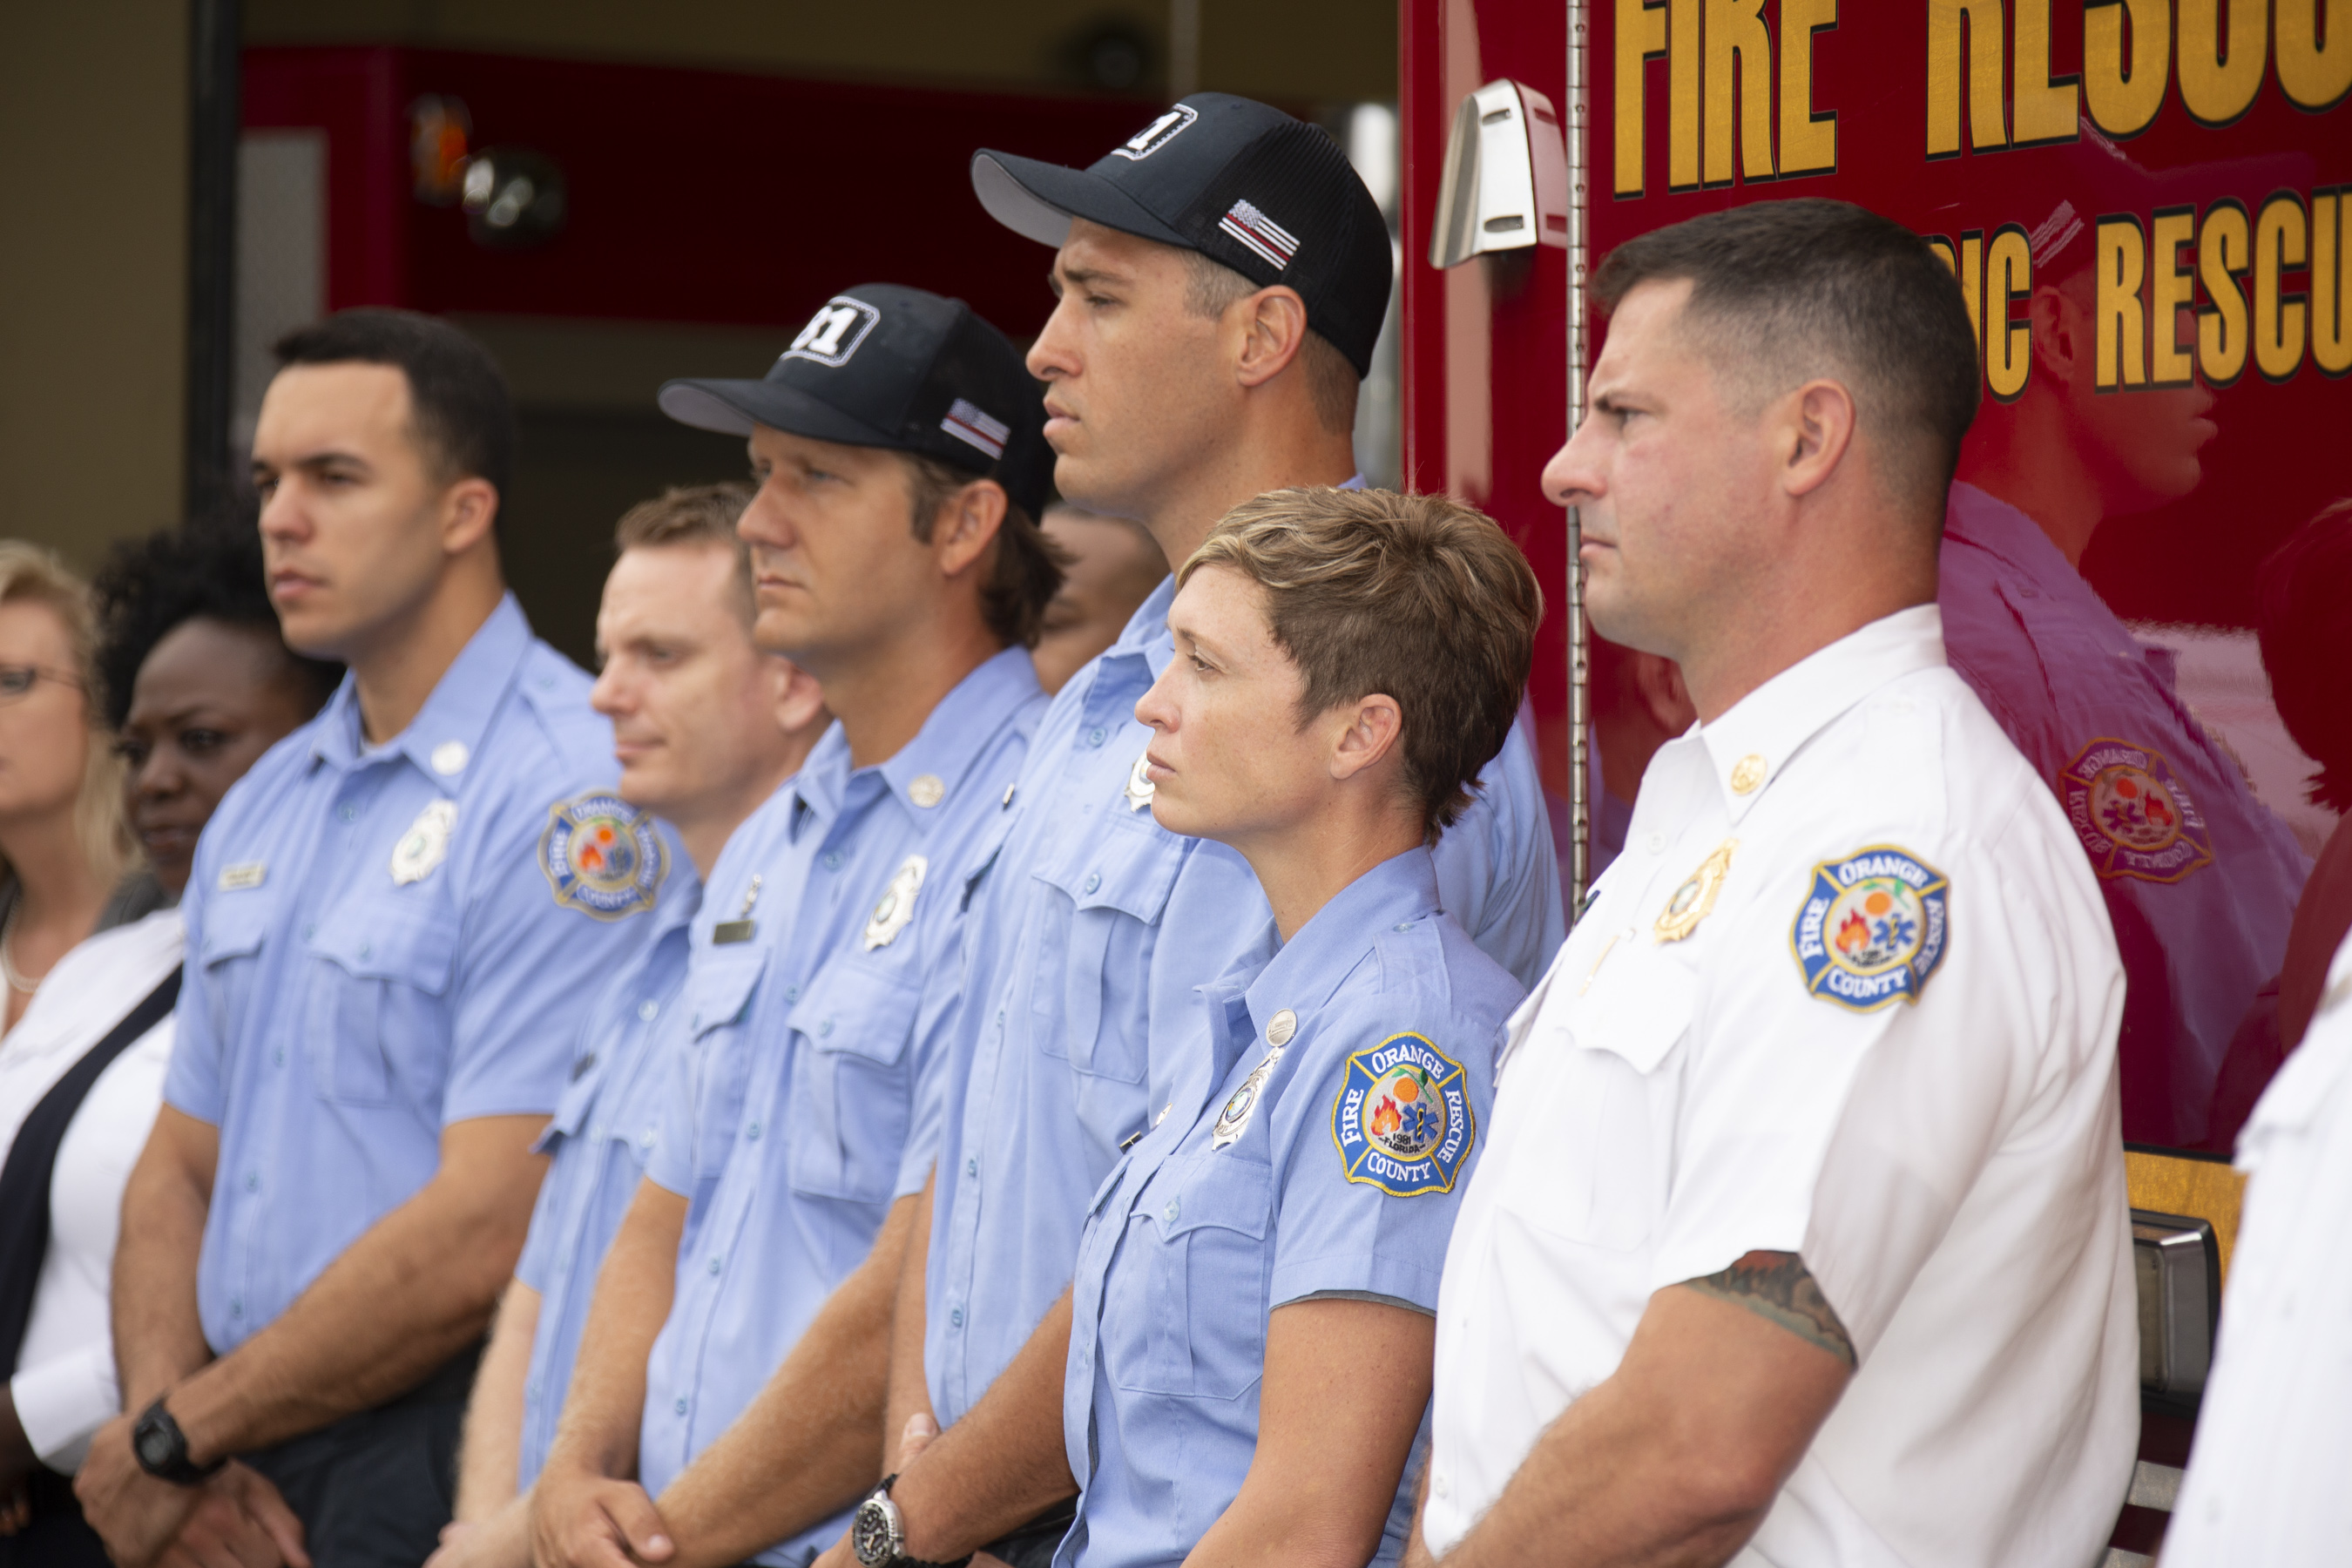 Firefighters standing side by side in front of a fire truck as they listen to a speaker who is not pictured.